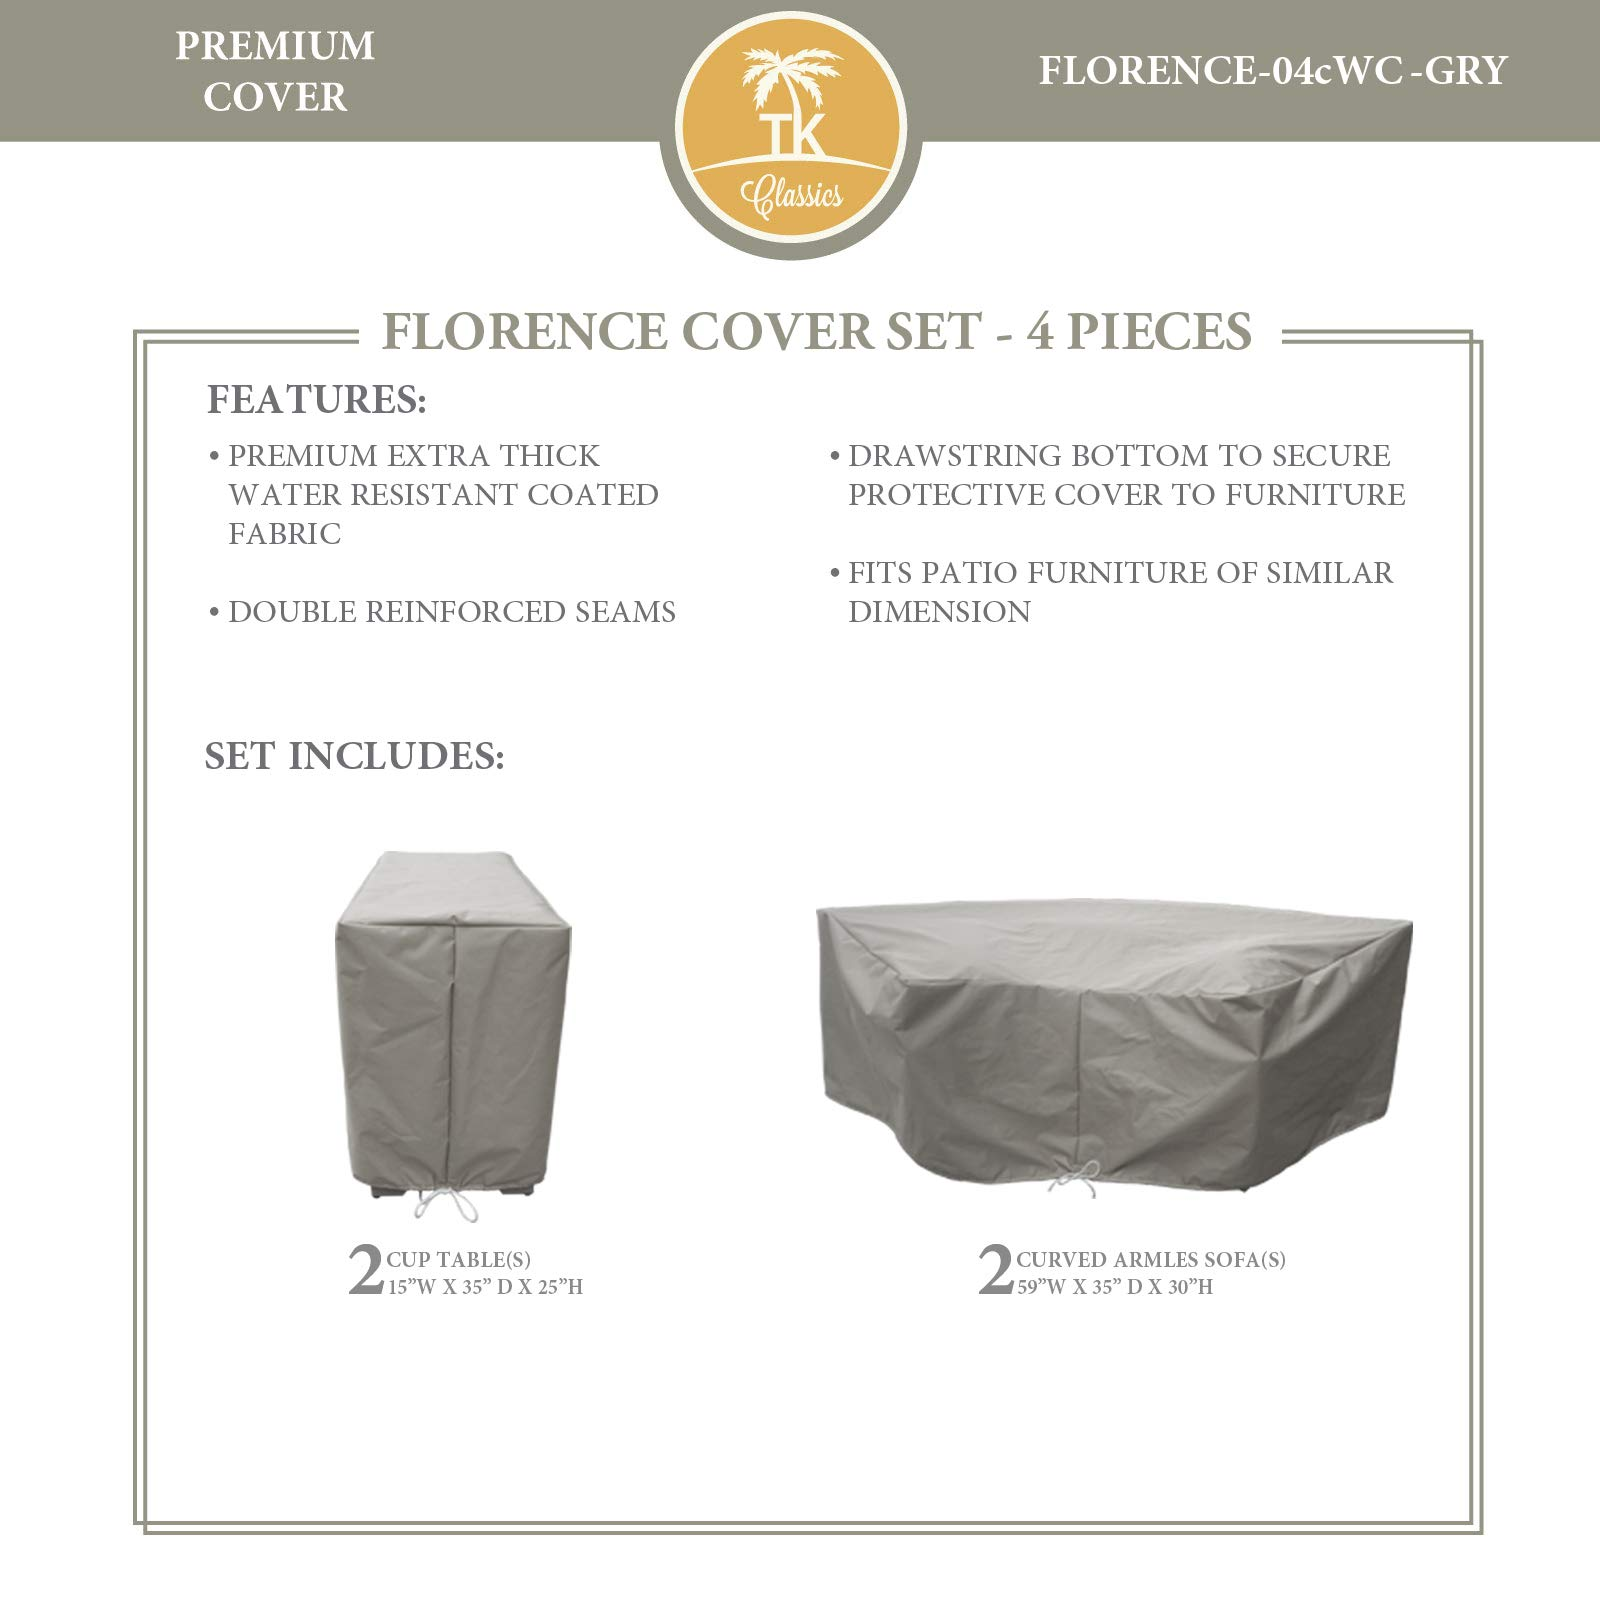 TK Classics FLORENCE-04c Protective Cover Set in Gray